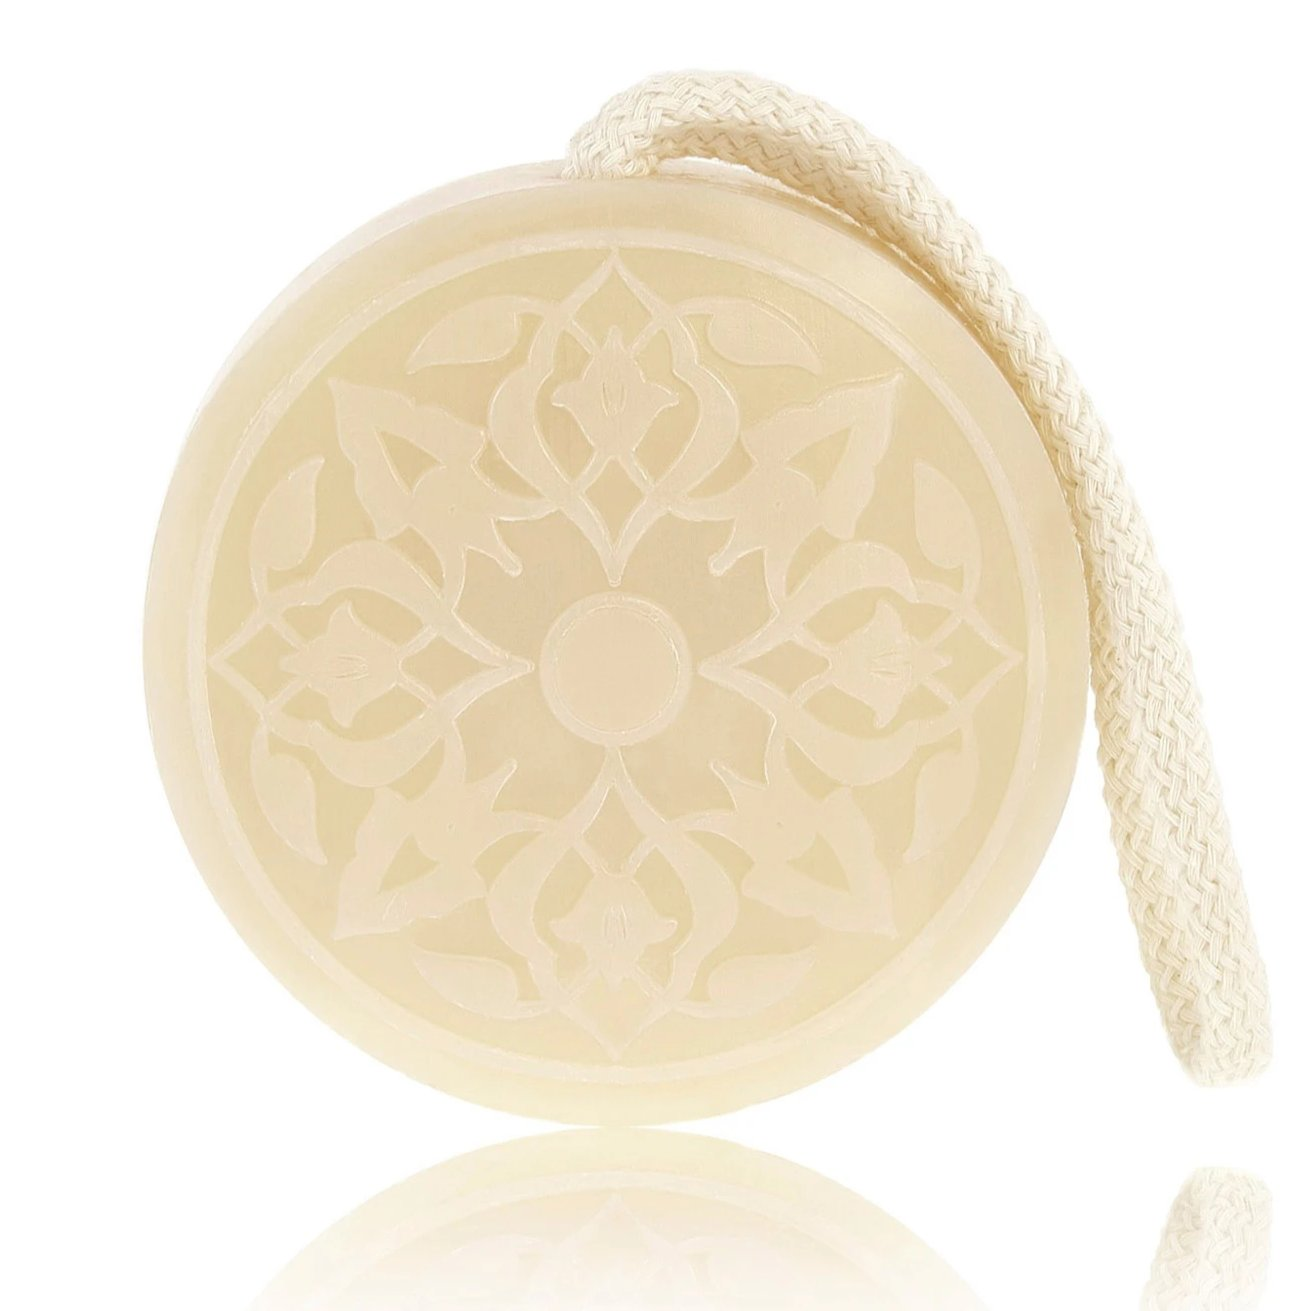 Orange Blossom Hammam Soap on a rope Senteurs d'Orient